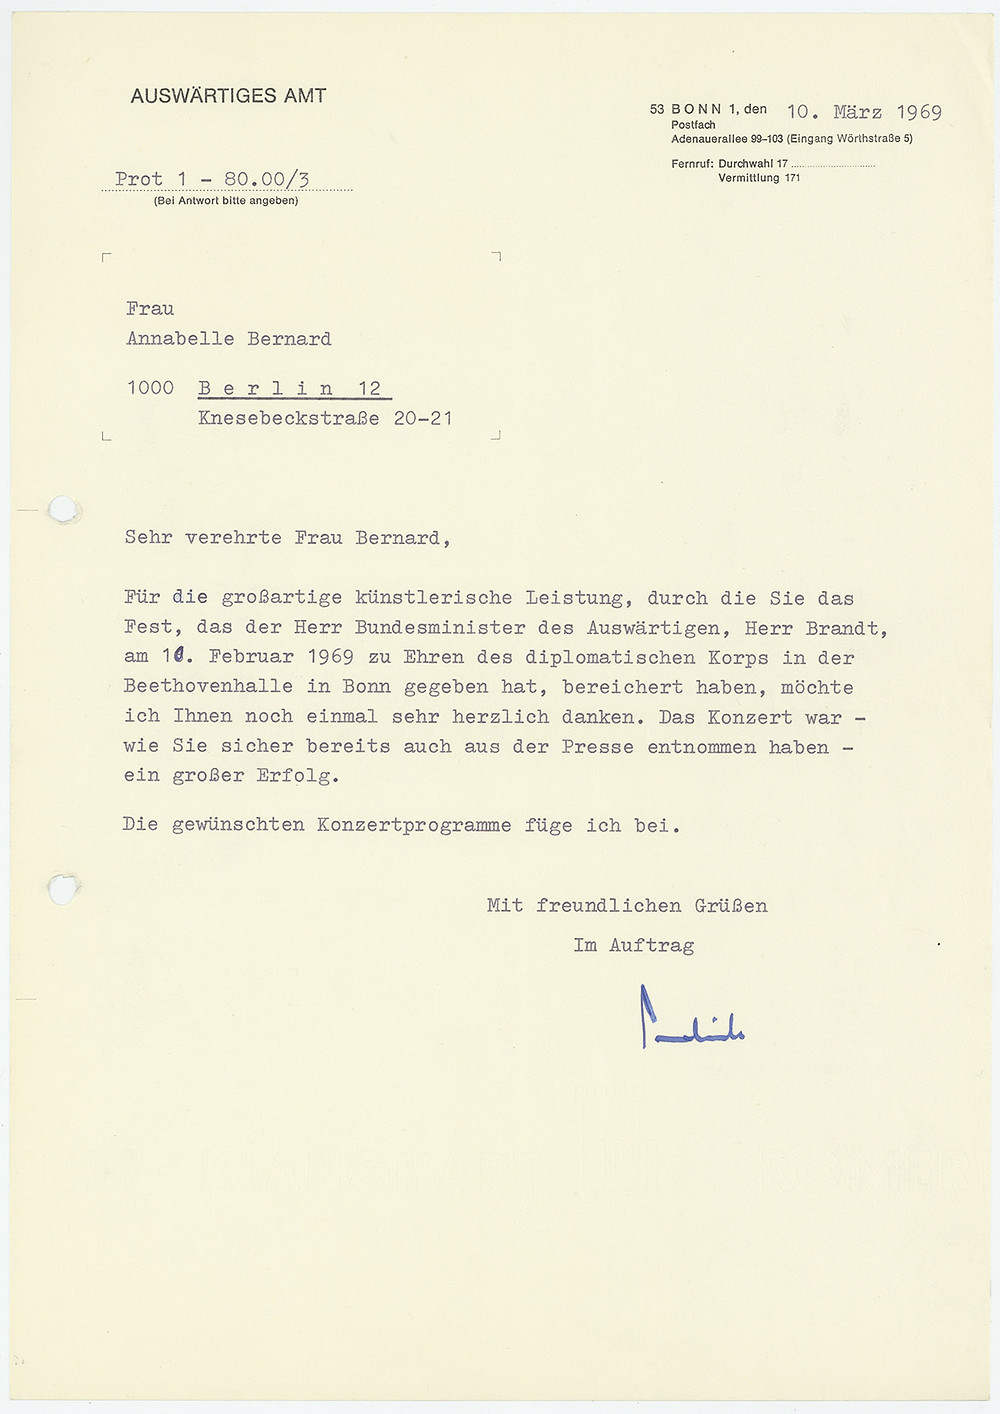 Letter of gratitude to Bernard for her performance at a party for (West) German Minister for Foreign Affairs, Mr. (Willy) Brandt, in Bonn, 1969.